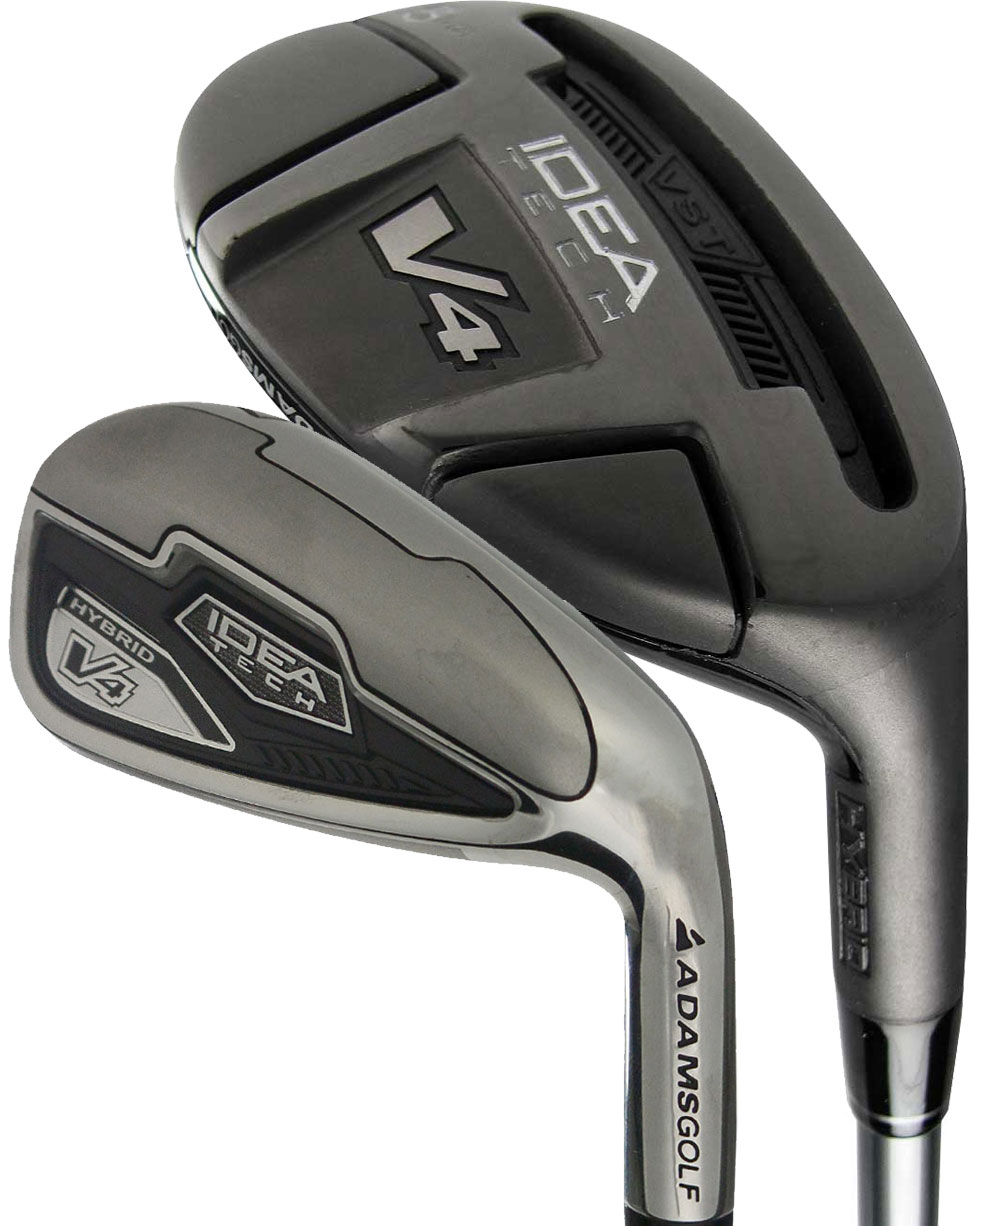 Best deals on adams golf clubs